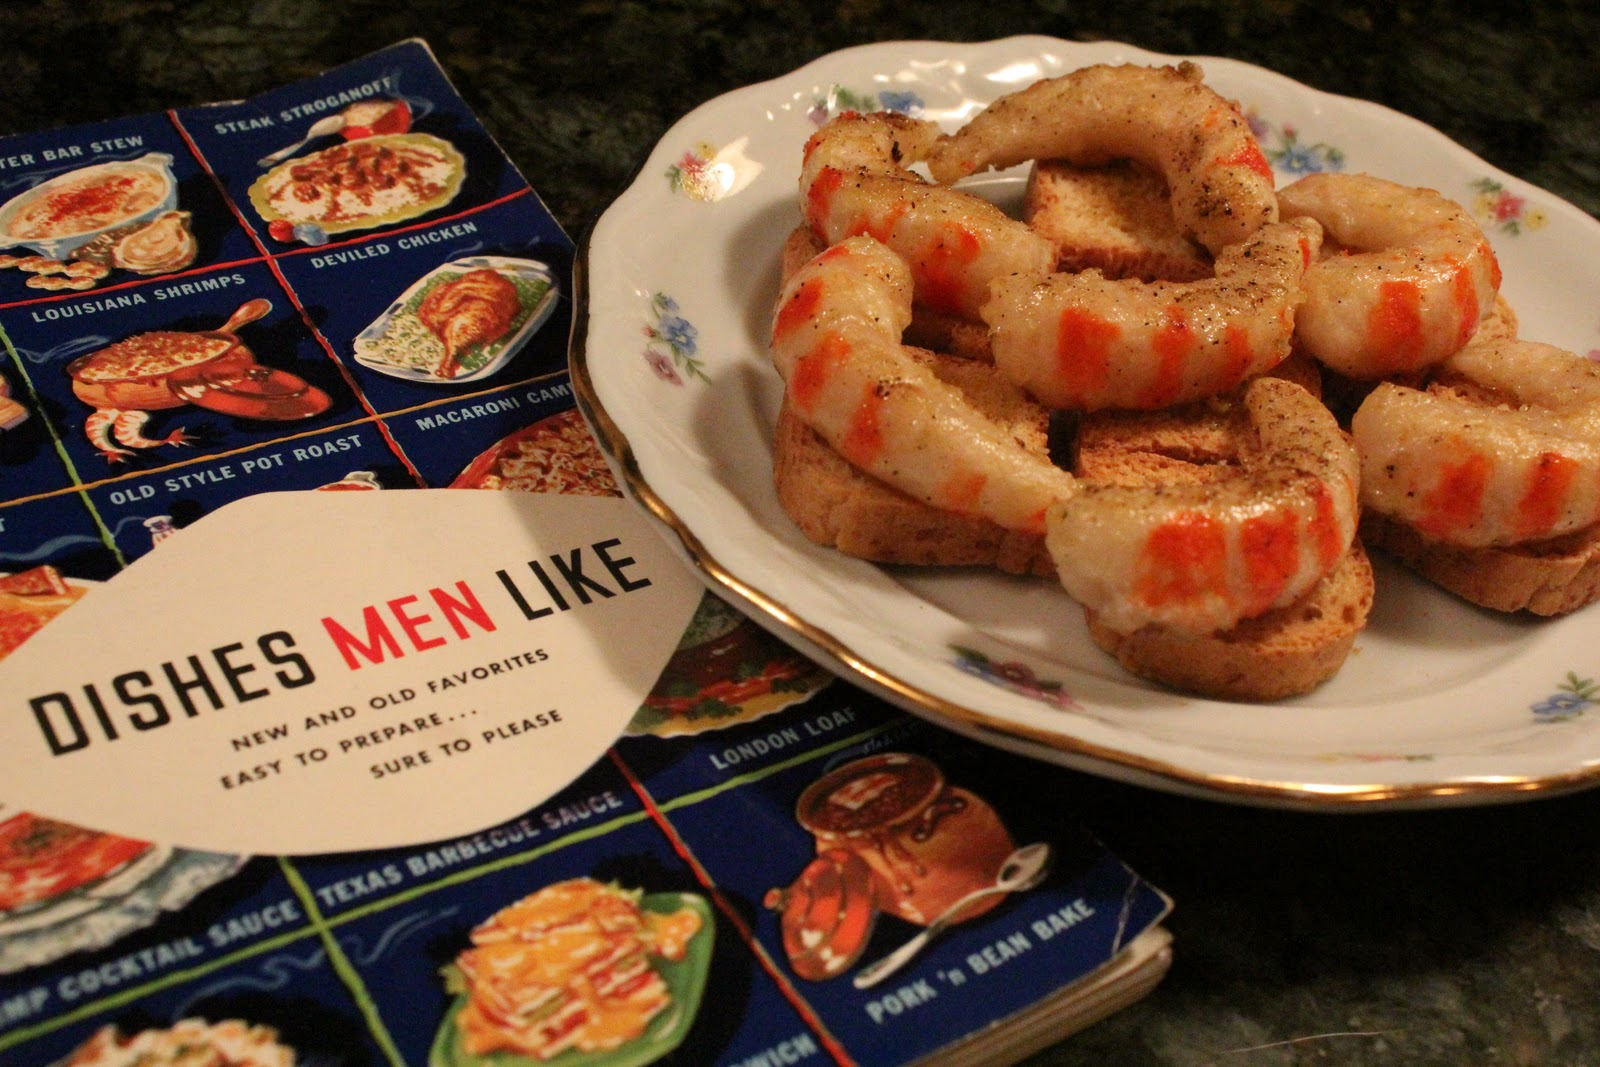 ... the Bee's Knees, Daddy!: Dishes Men Like: Shrimp Canapes & Crab B...